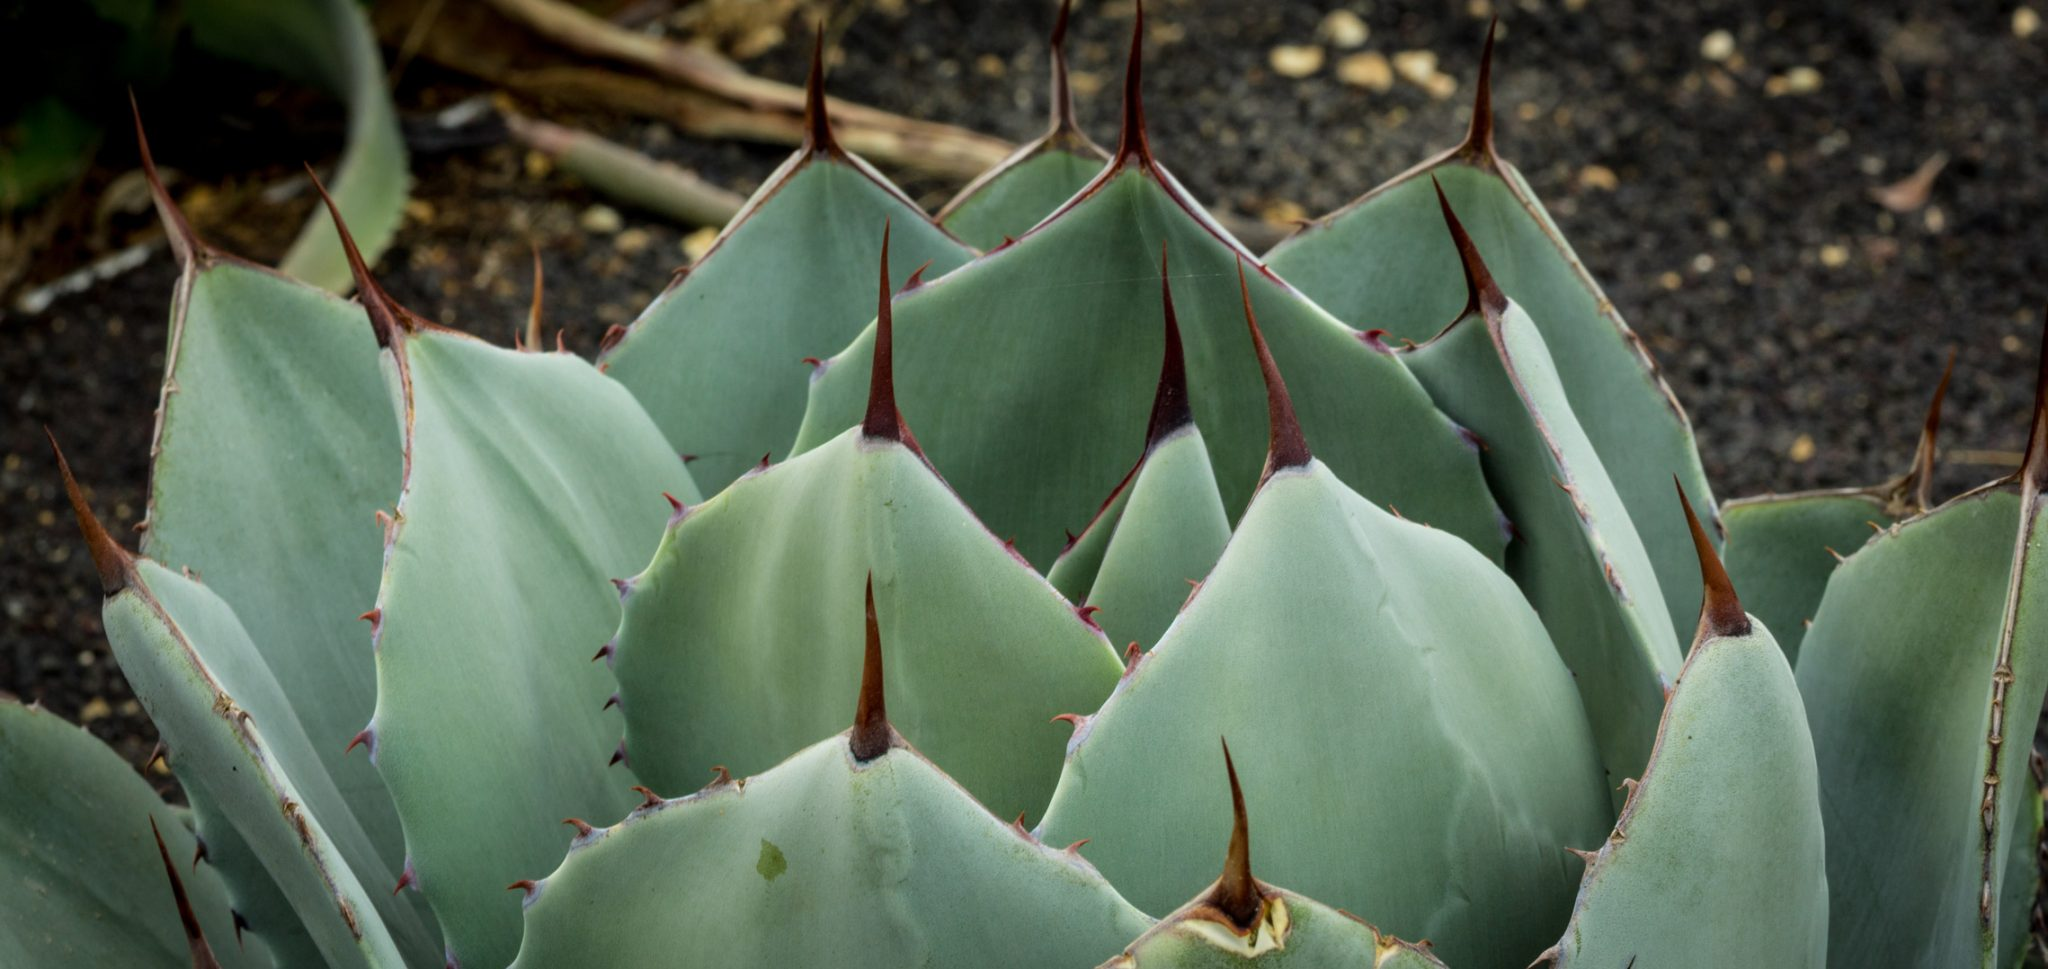 A close-up of the leaves and spines of the Artichoke Agave.